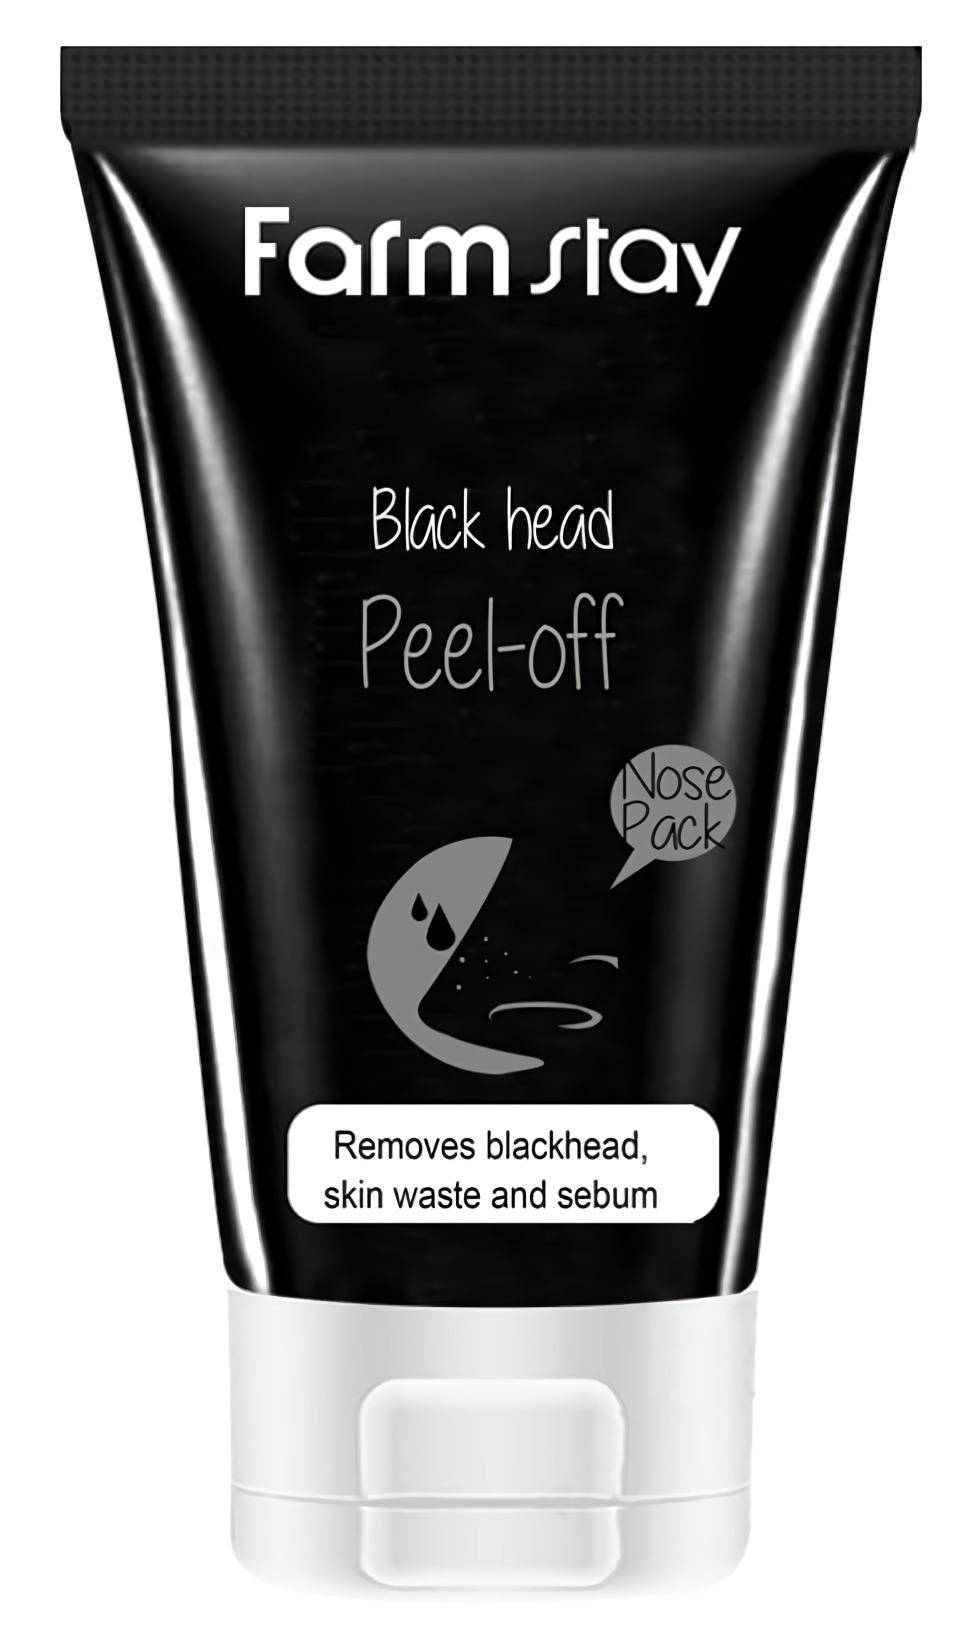 FarmStay Charcoal Black Head Peel-Off Nose